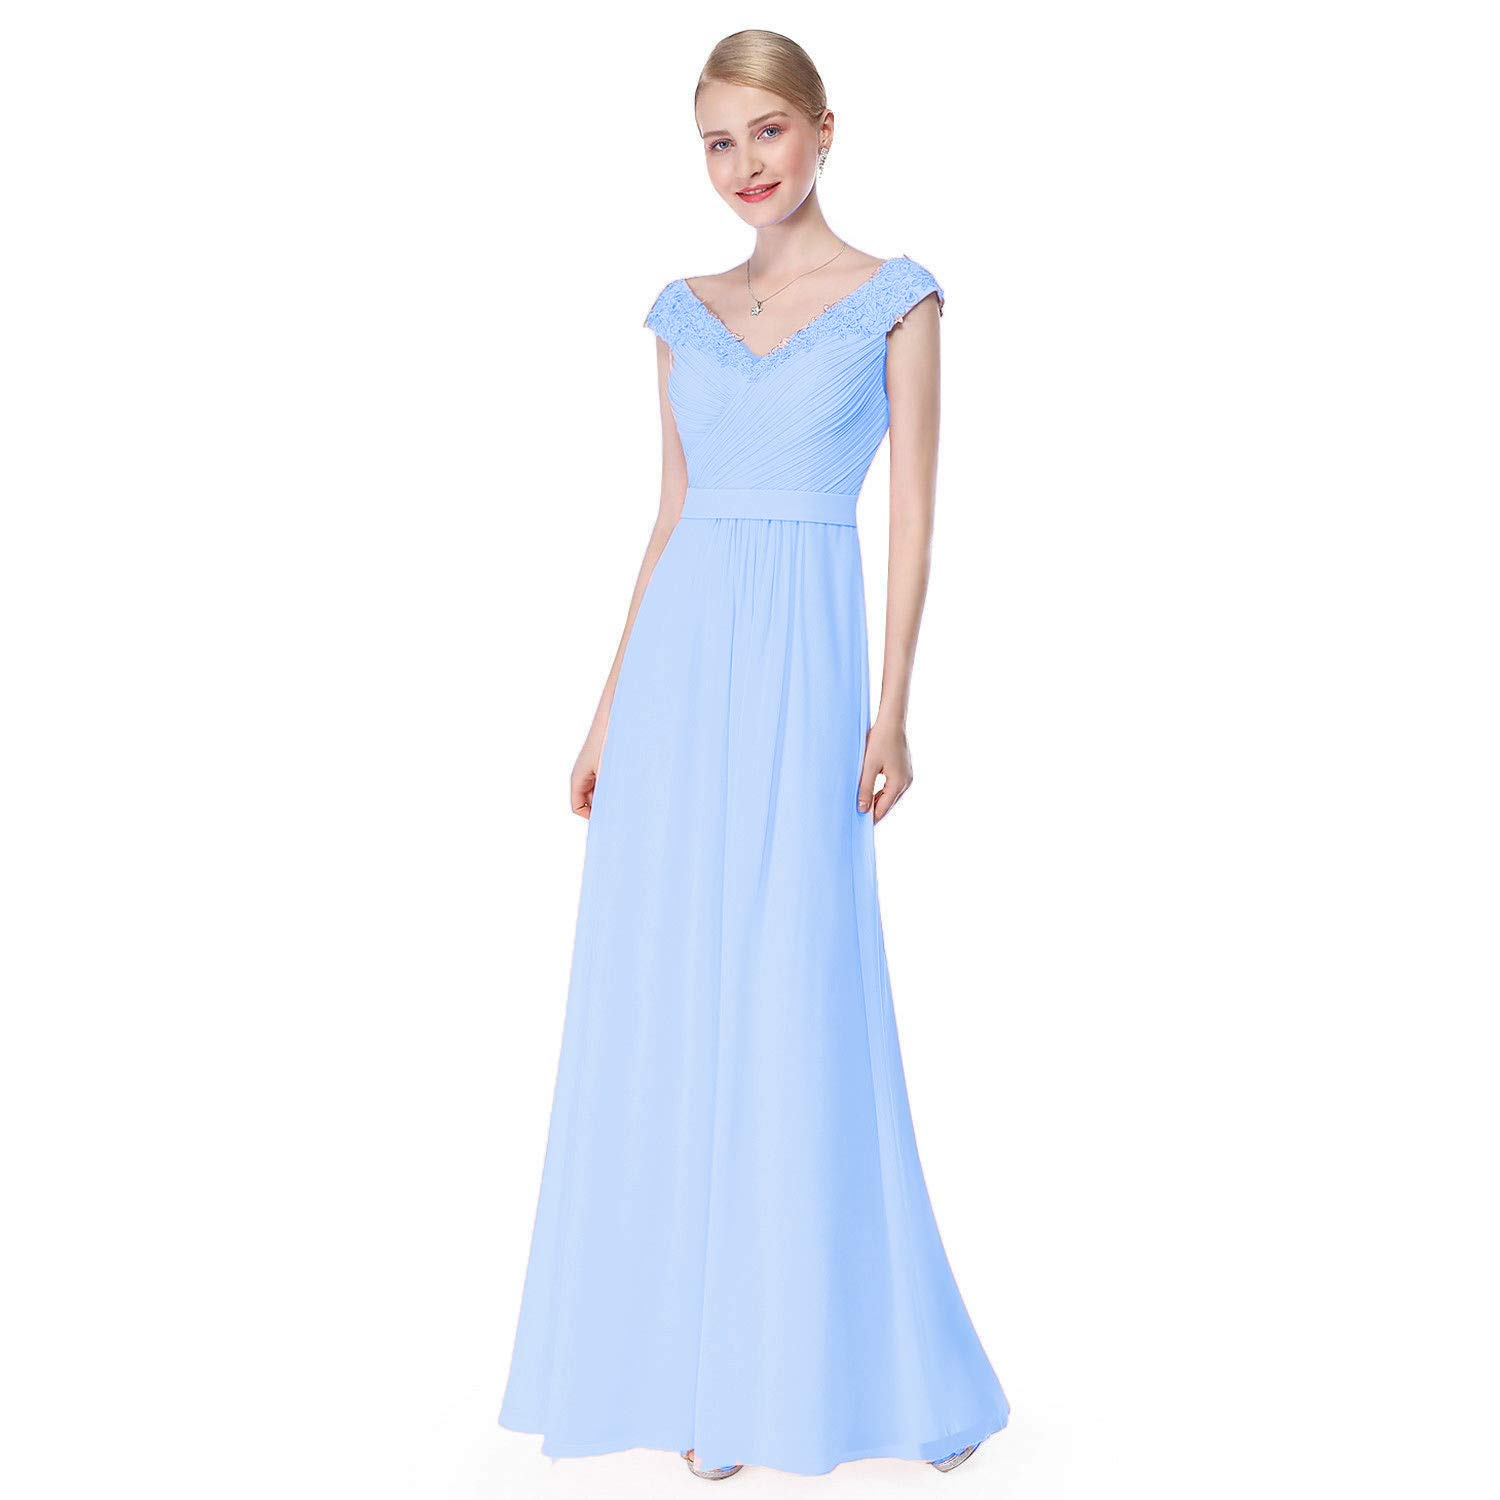 Sky bluee Ruiyuhong Women's Aline Sleeveless Bridesmaid Dresses VNeck Wedding Party Gown